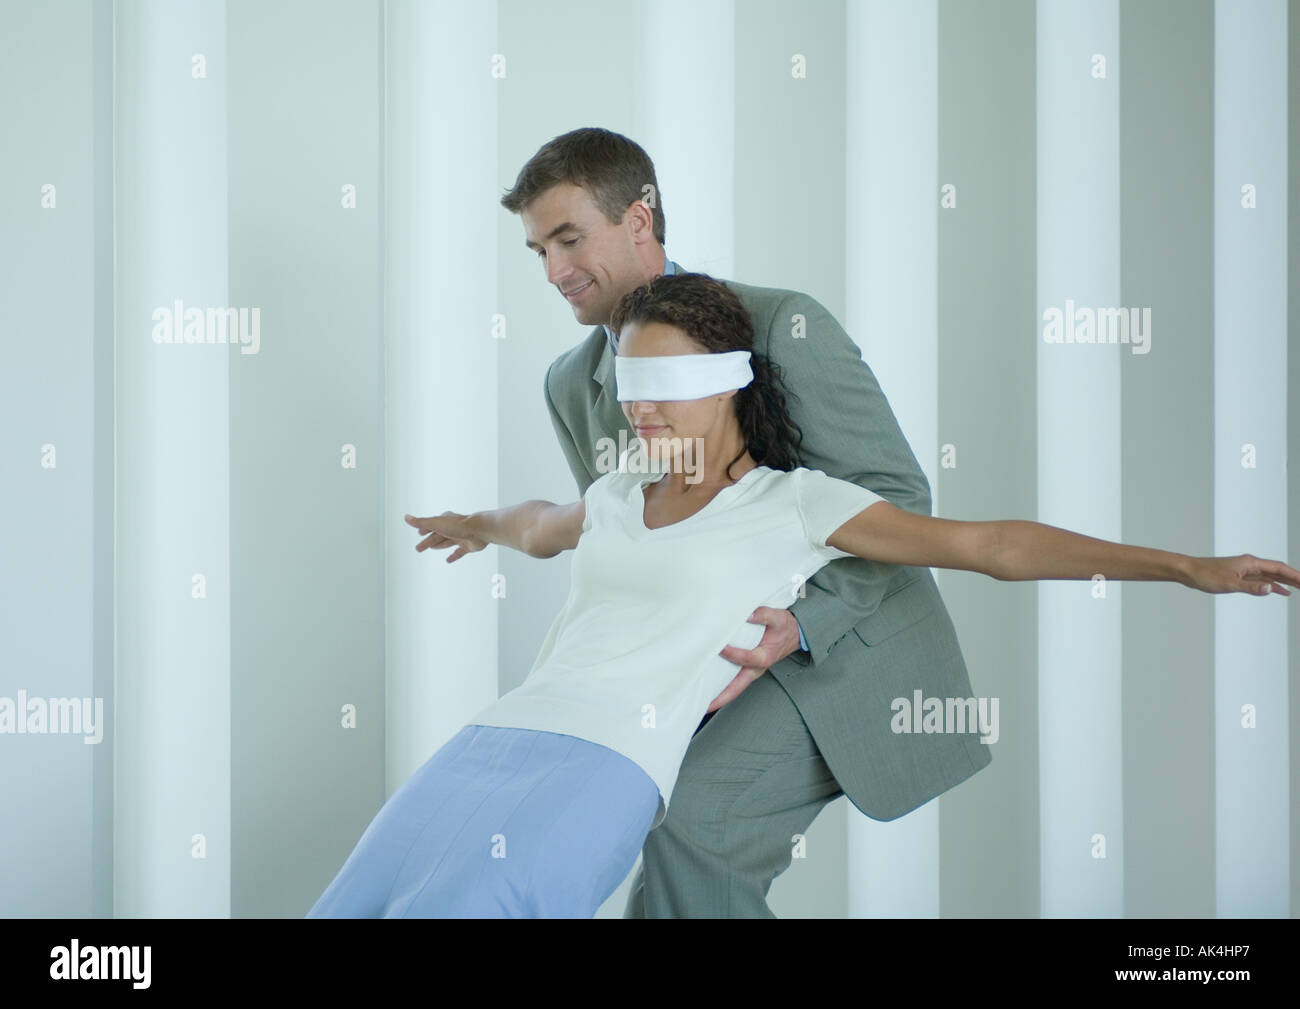 Businessman catching blindfolded woman - Stock Image